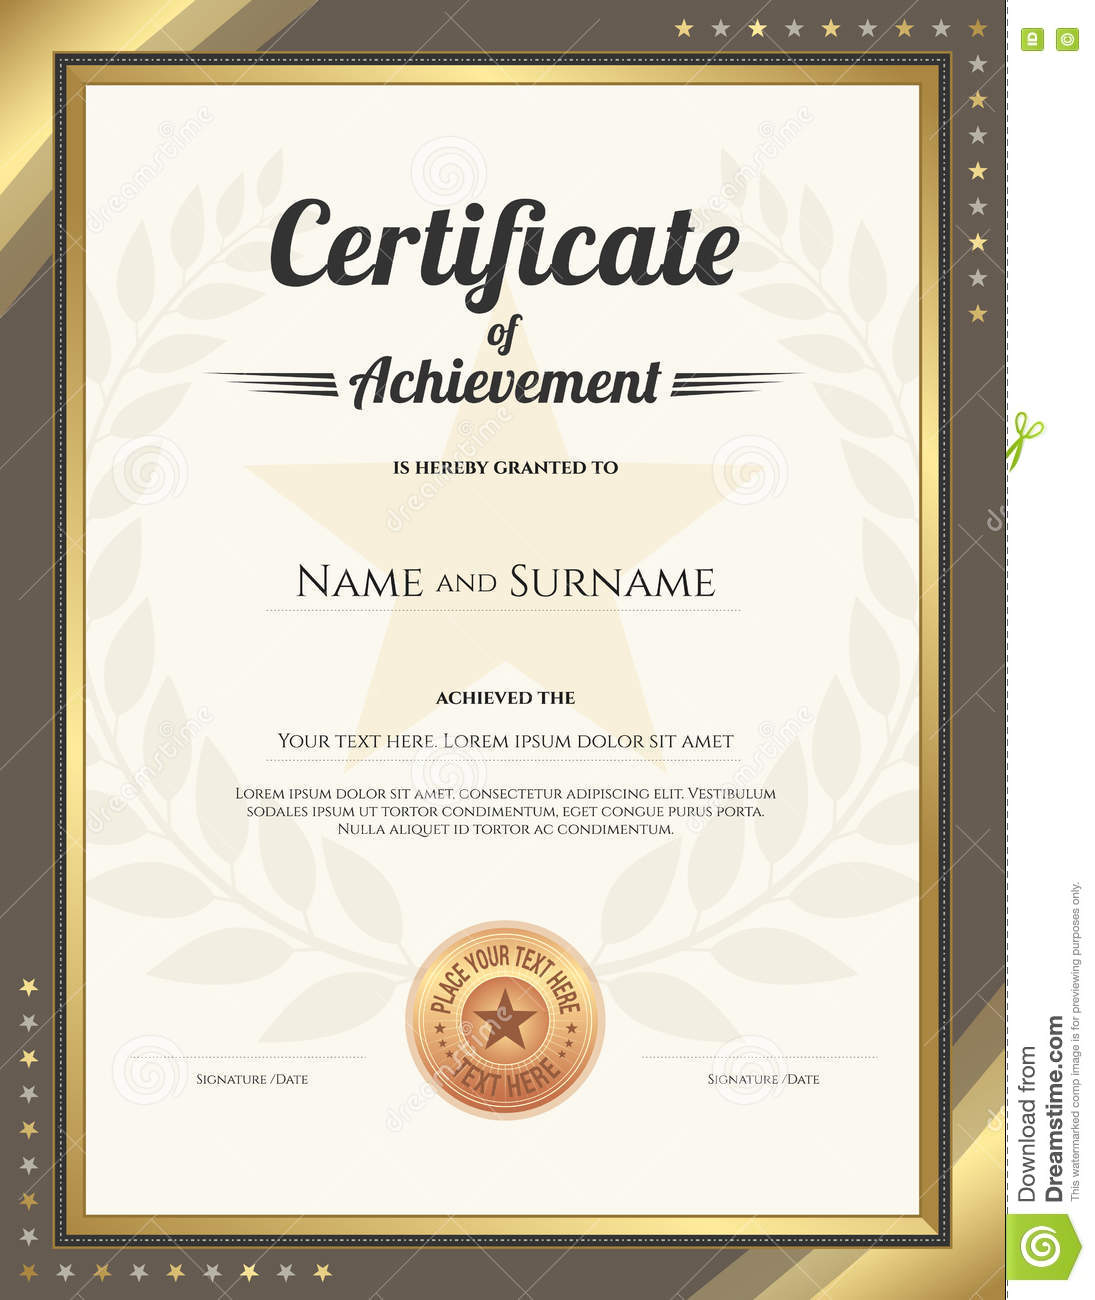 Portrait certificate of achievement template with gold border stock portrait certificate of achievement template with gold border yadclub